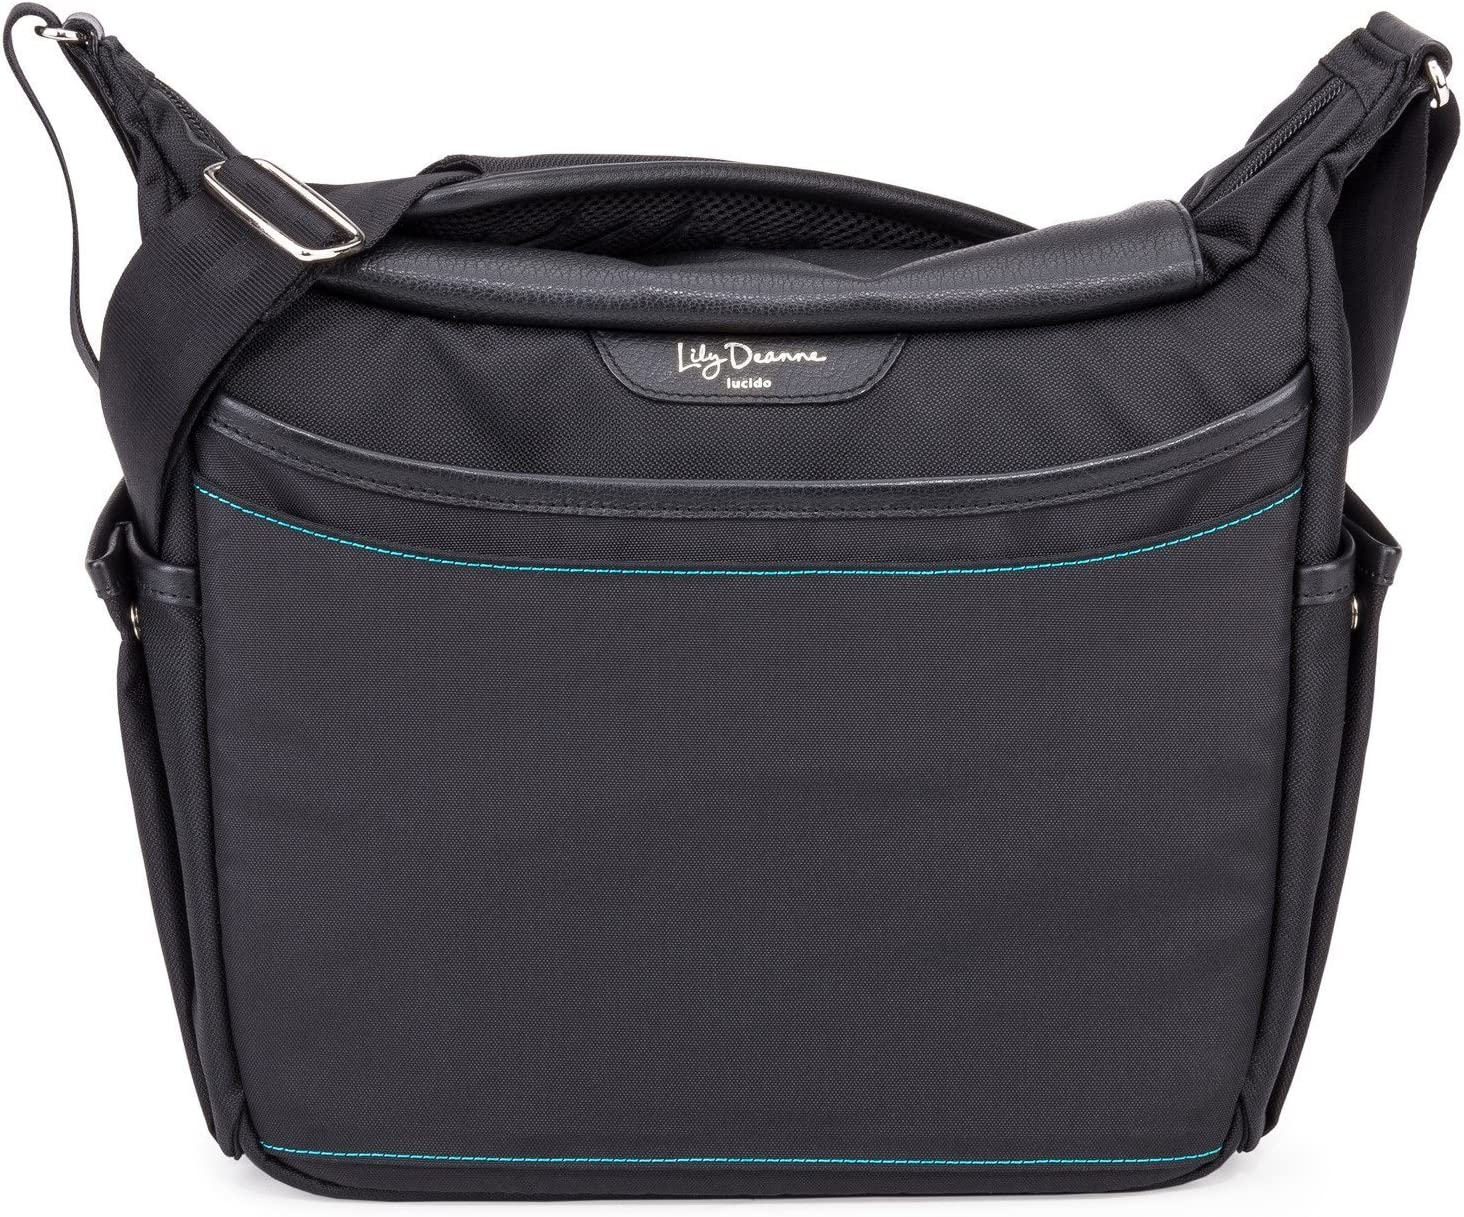 Think Tank Photo Lily Deanne Lucido Premium-Quality Camera Bag Licorice